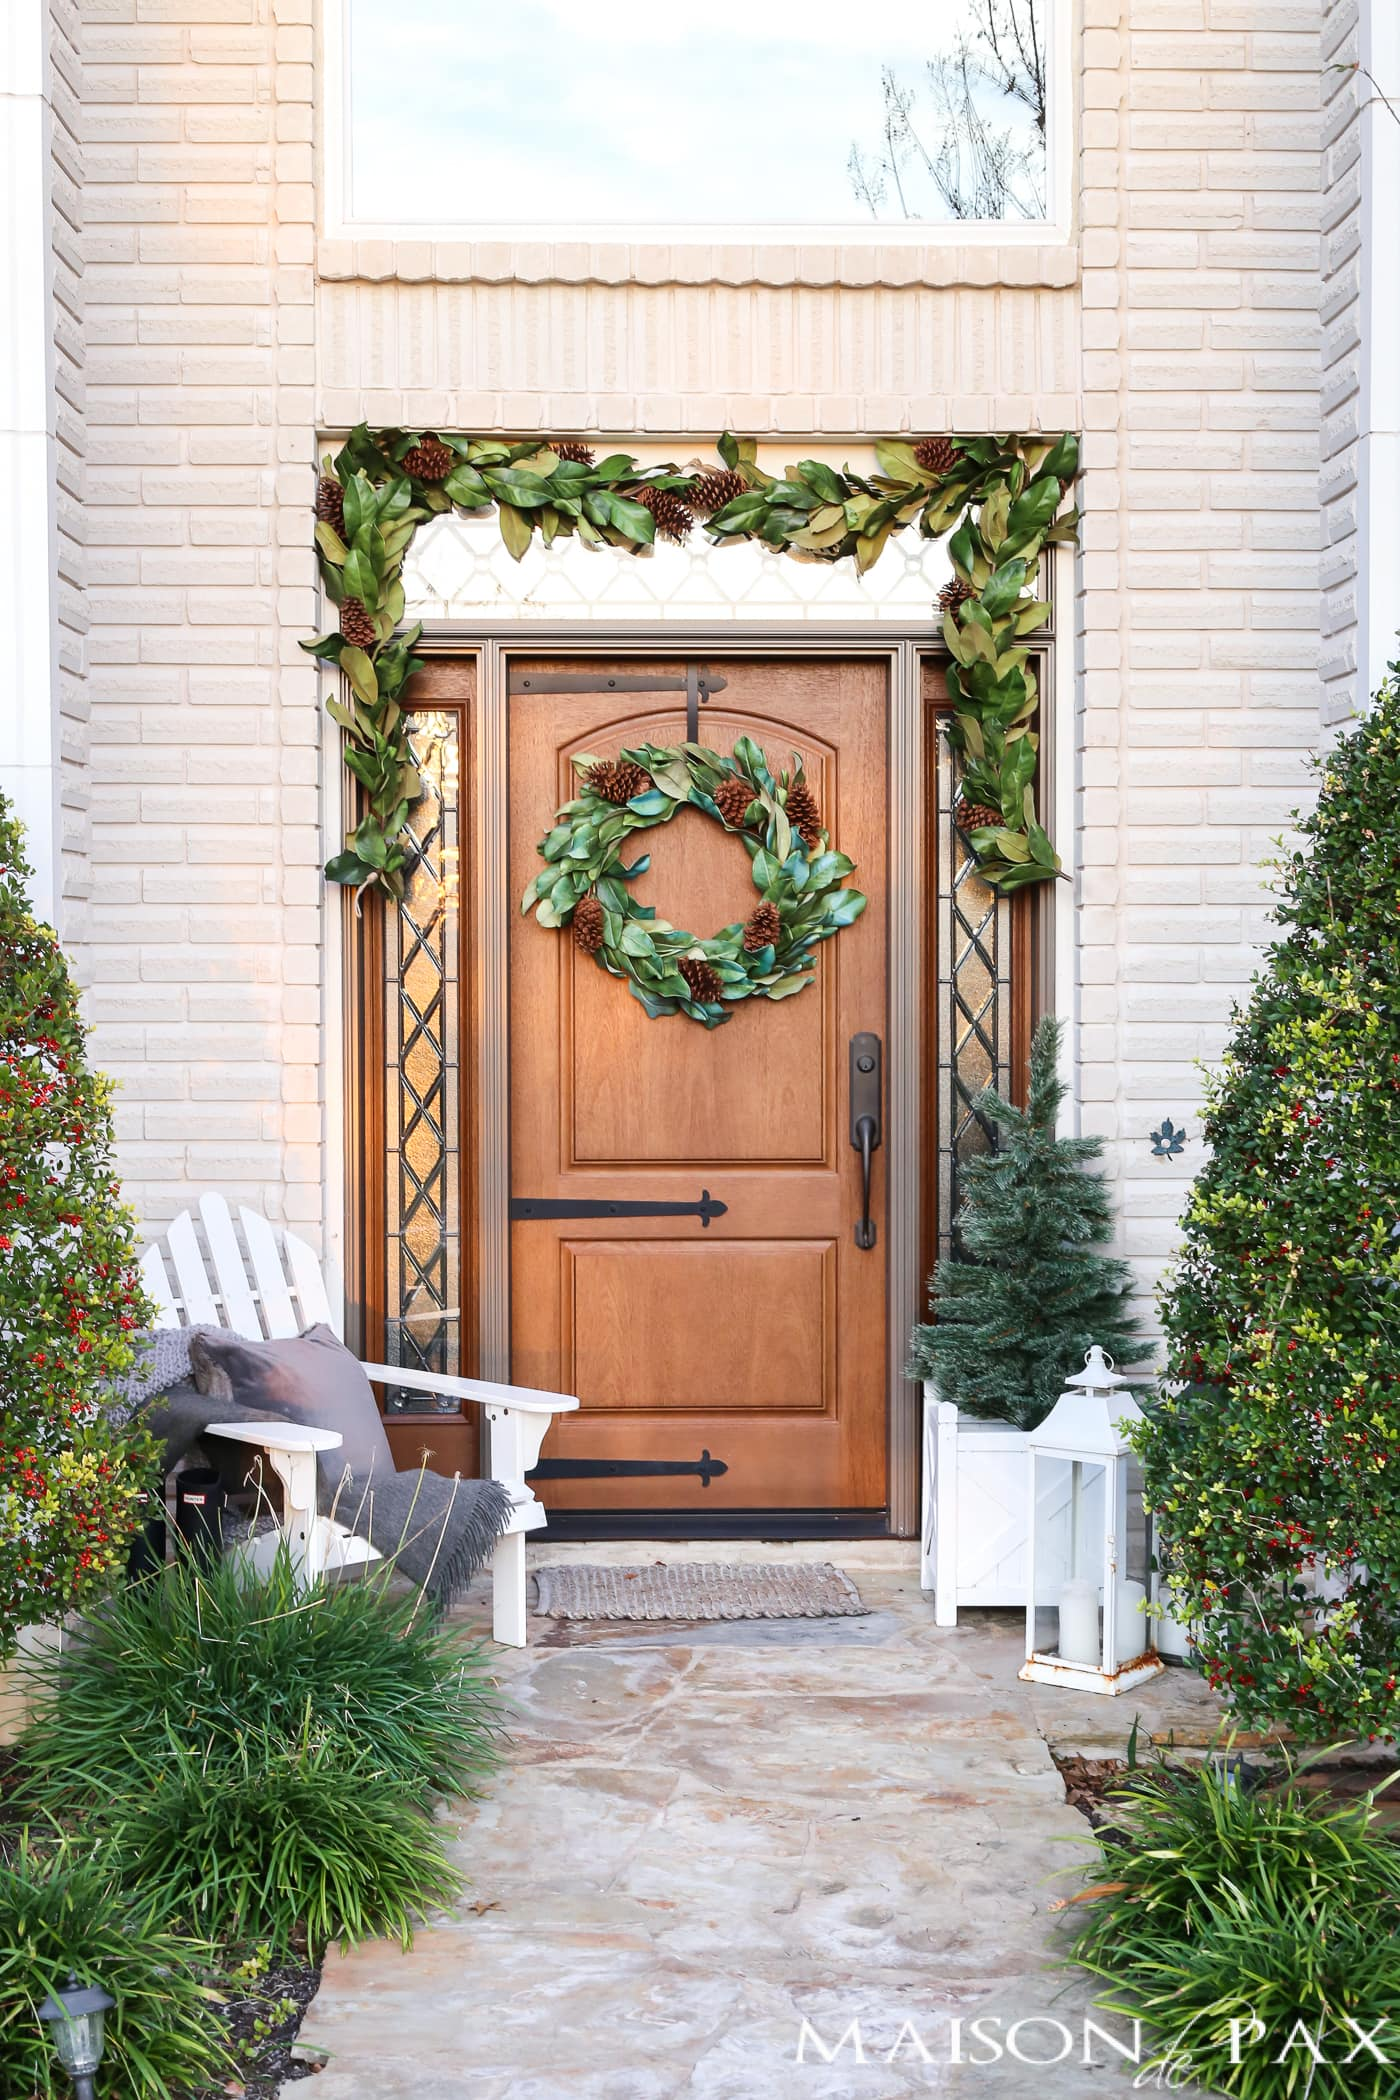 souther magnolia holiday front porch #magnoliawreath